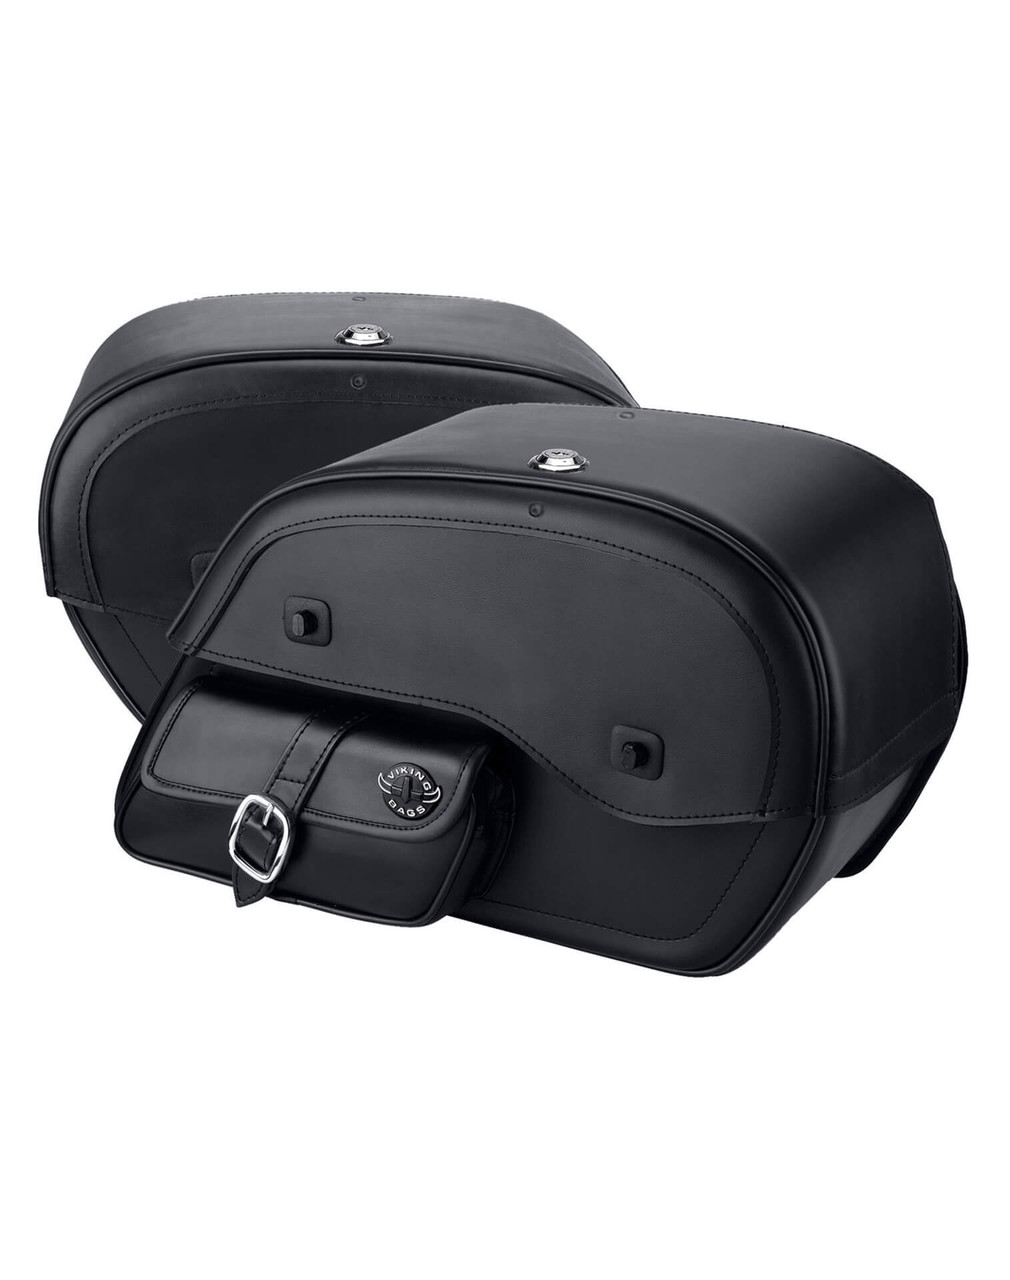 Viking Charger Side Pocket Large With Shock Cutout Motorcycle Saddlebags For Harley Dyna Low Rider FXDL Both Bags View